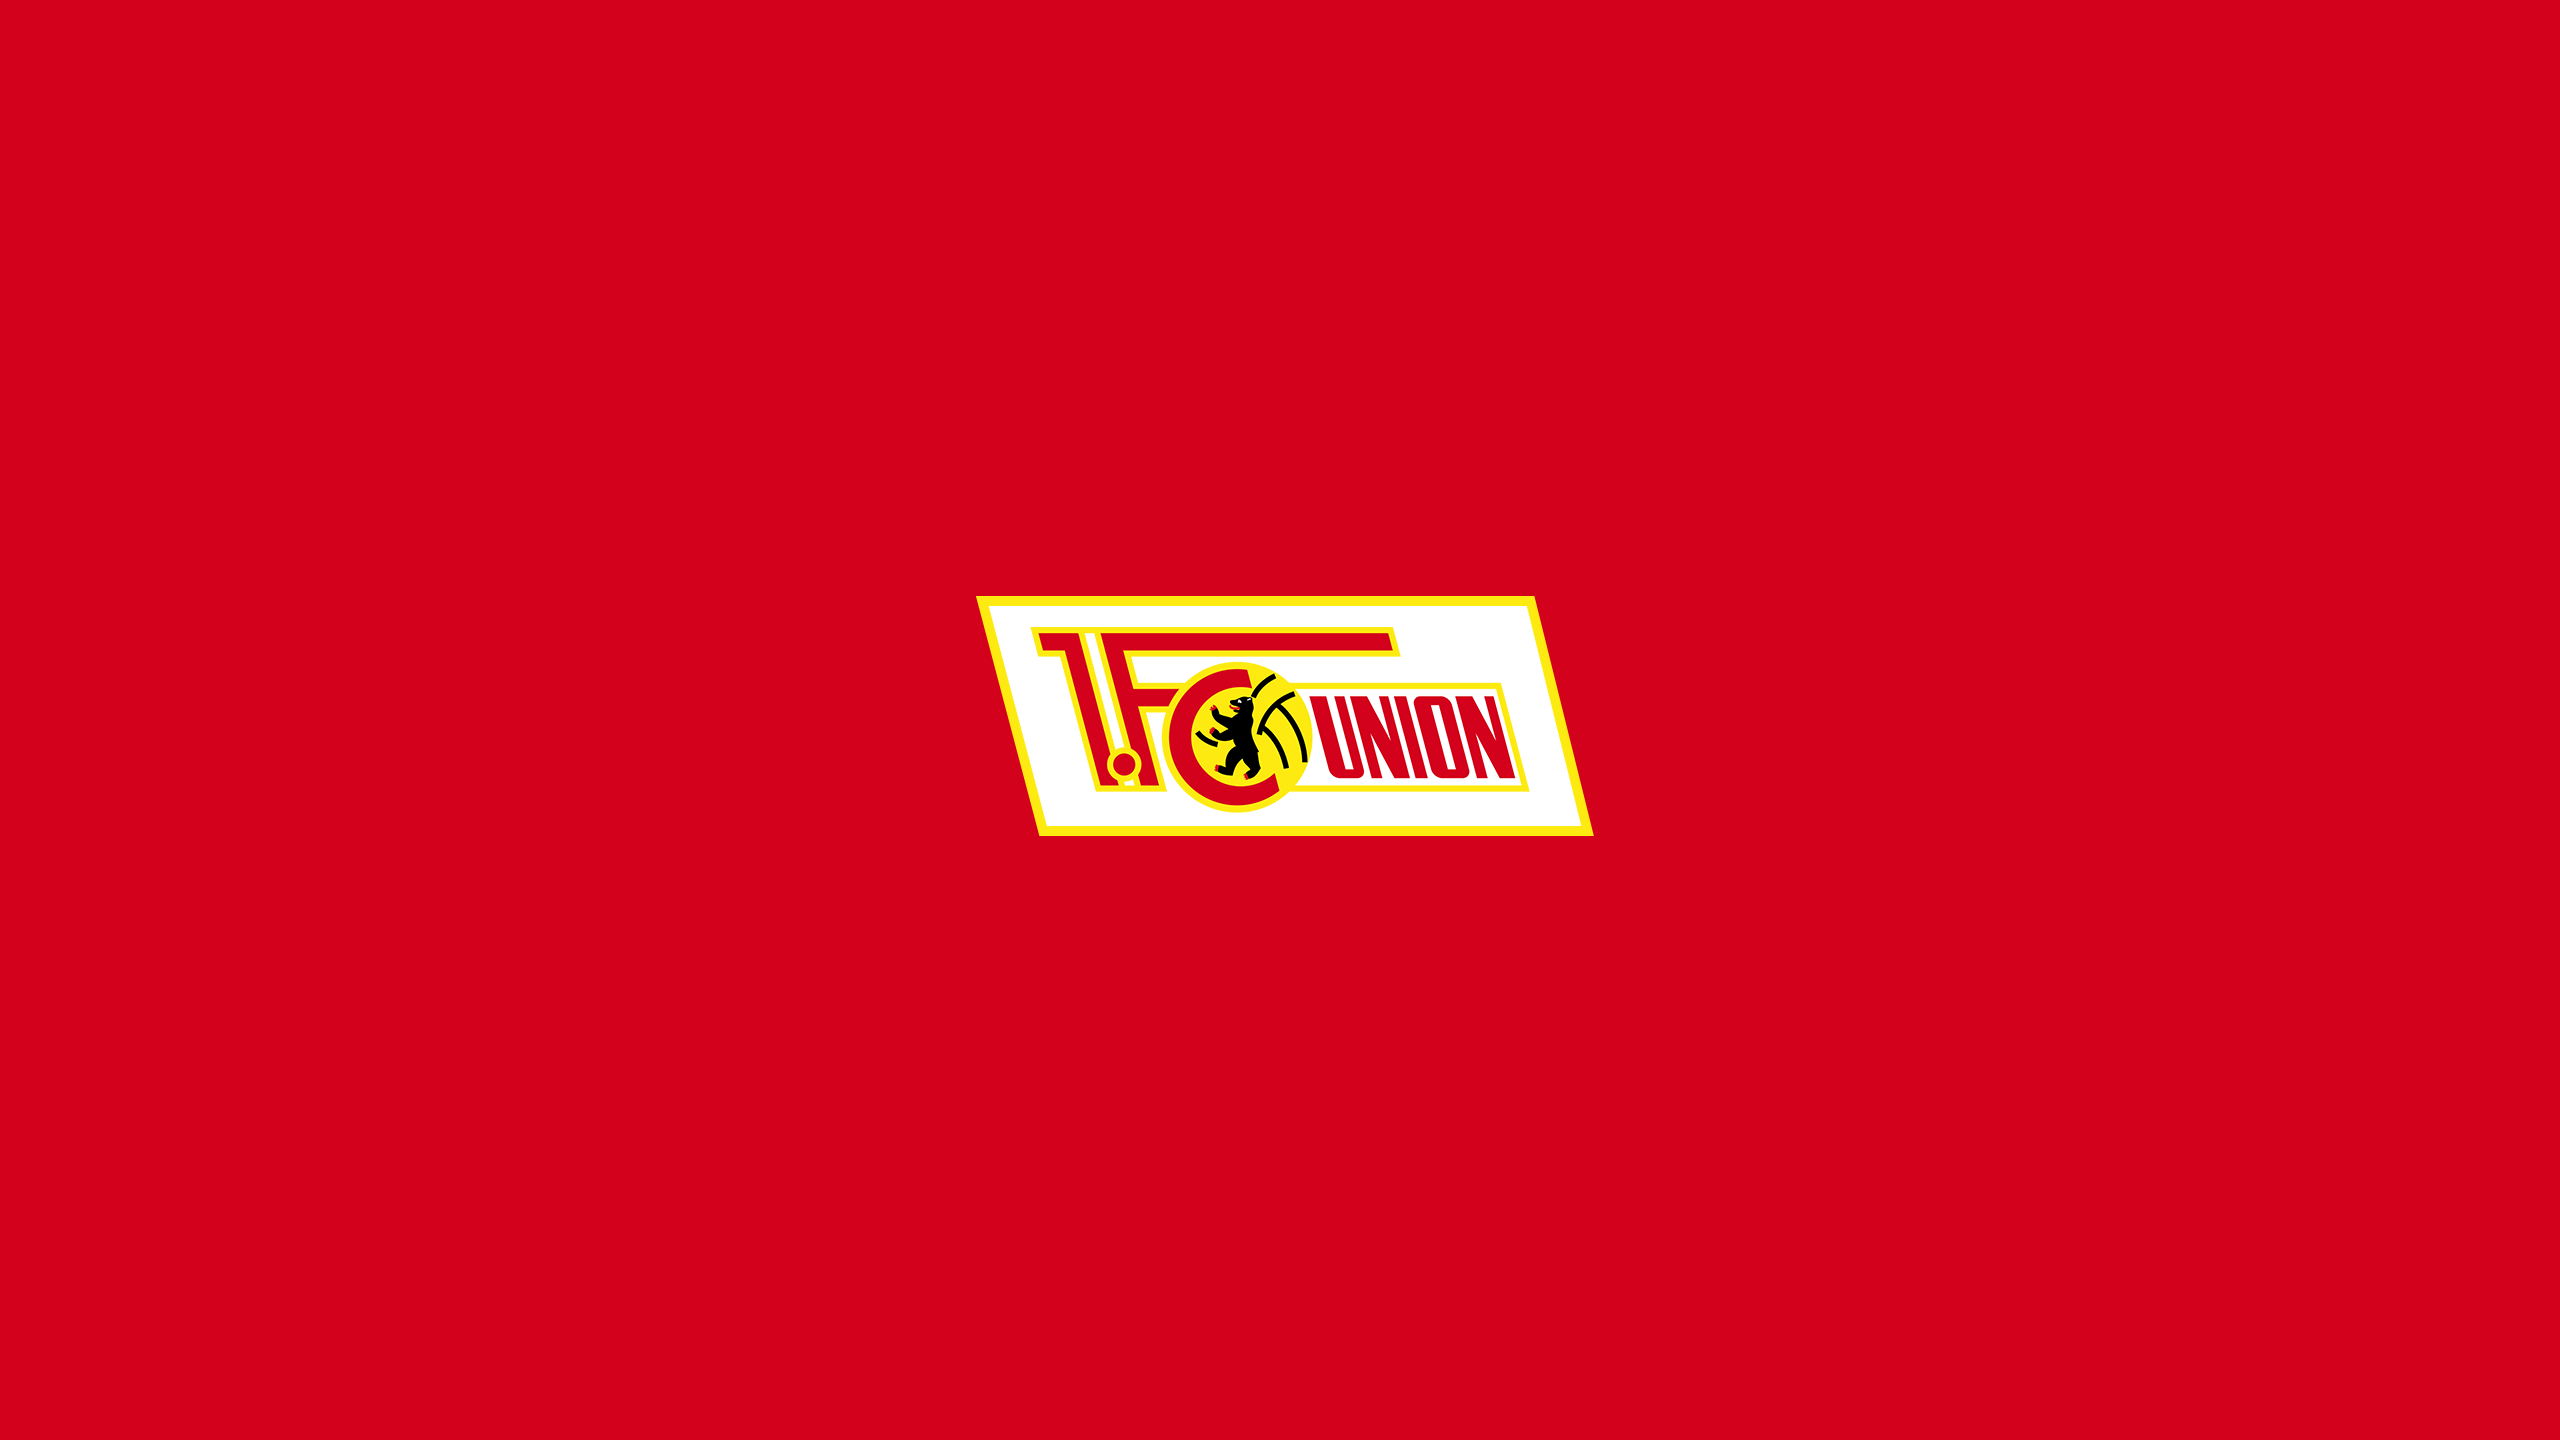 Fc union berlin logo image files for download. 1 Fc Union Berlin Hd Wallpaper Background Image 2560x1440